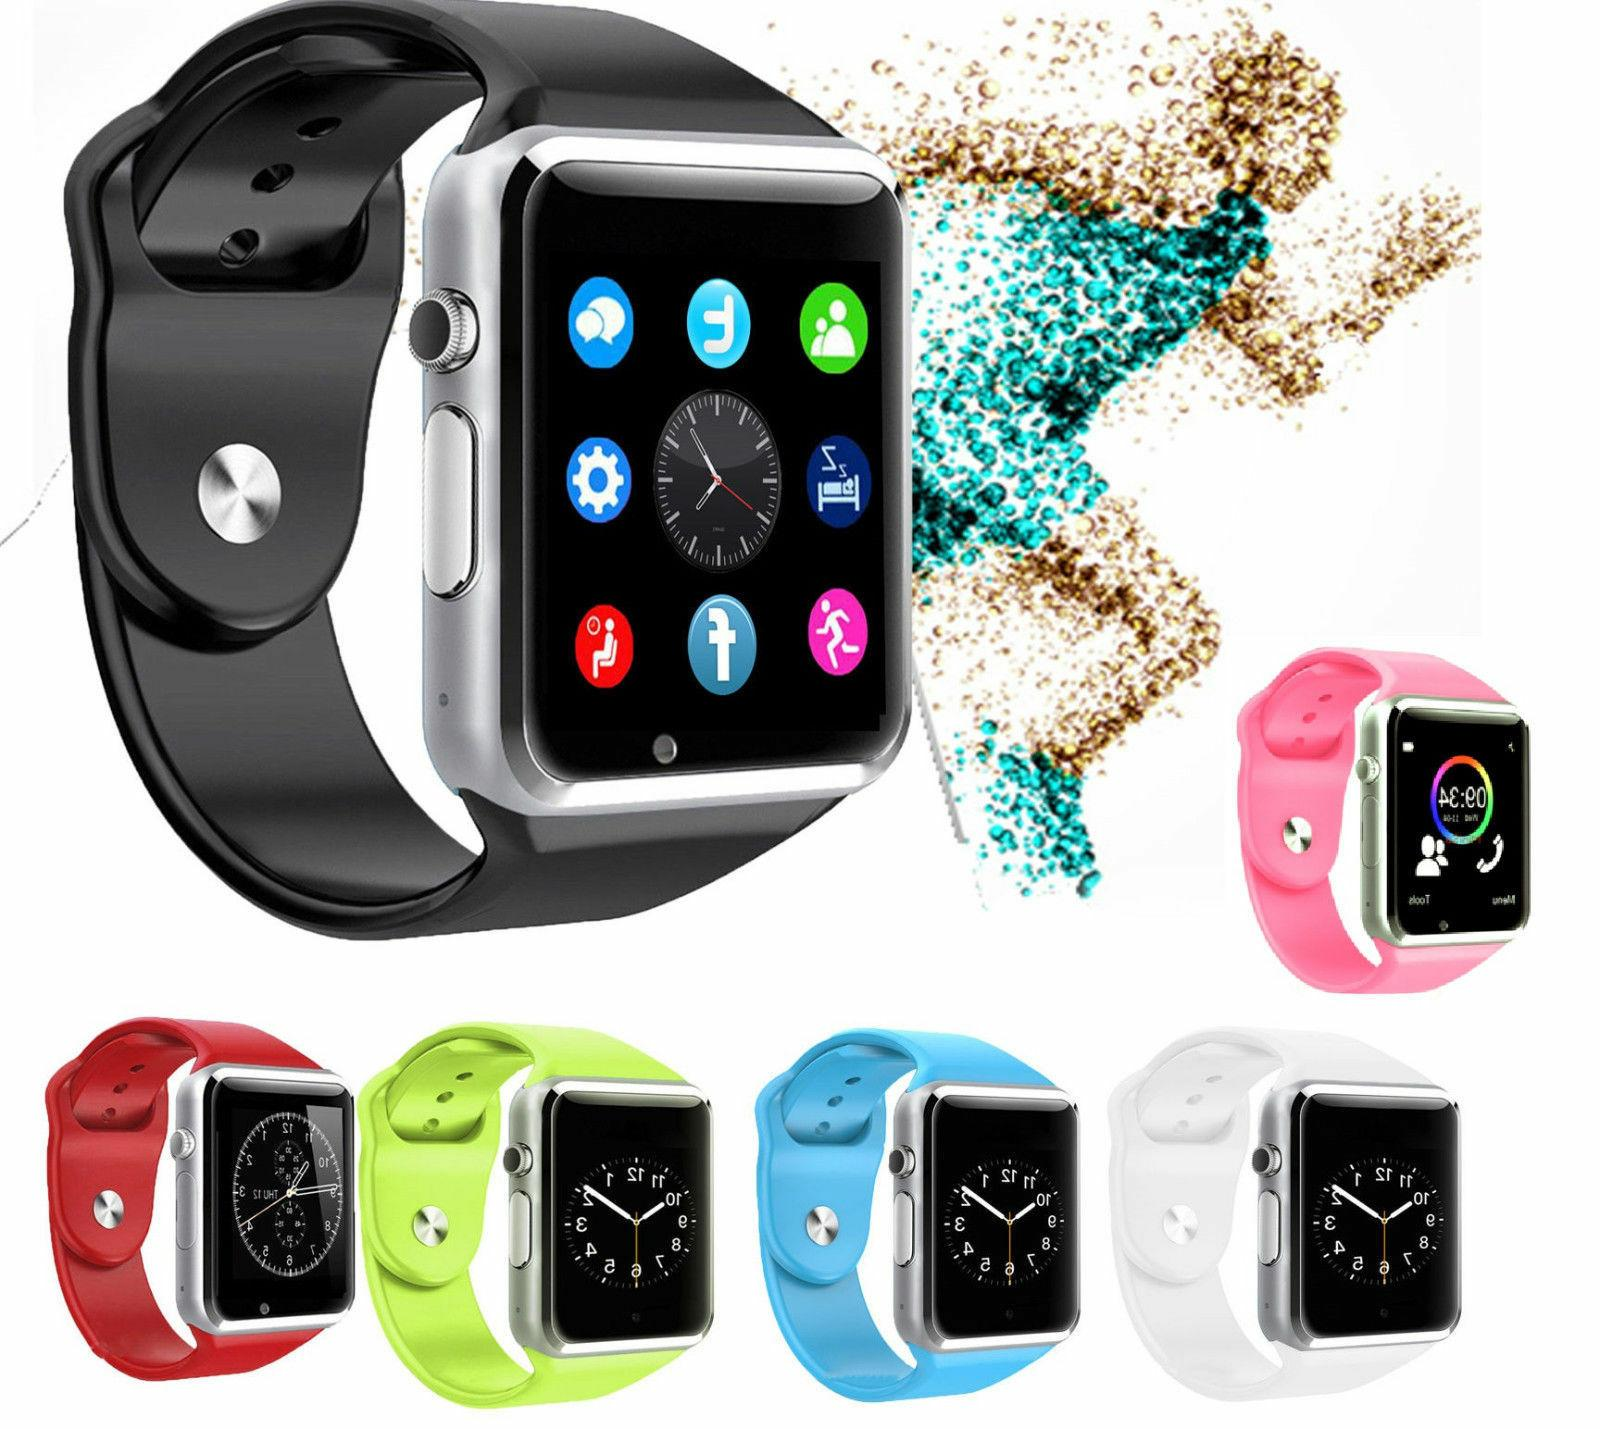 bluetooth smart watch w camera waterproof phone